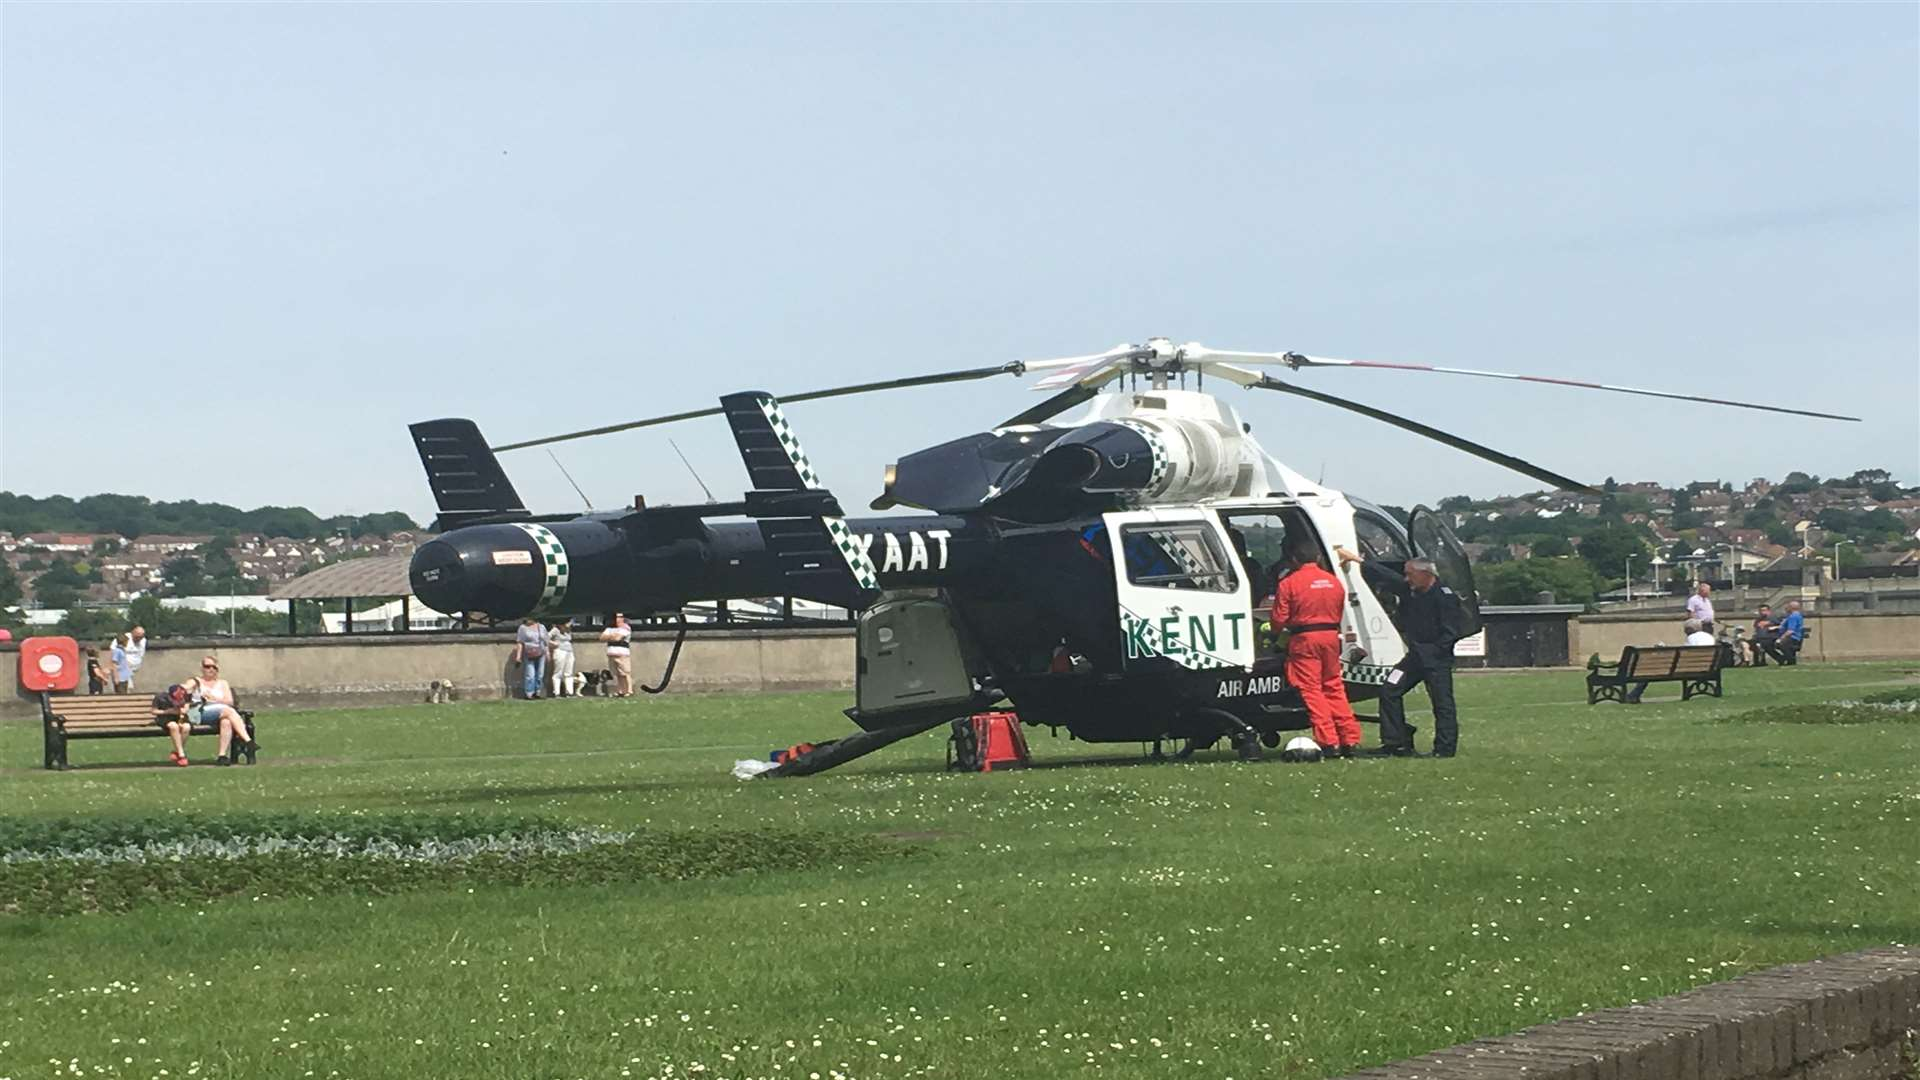 The Kent Air Ambulance landed on The Esplanade.